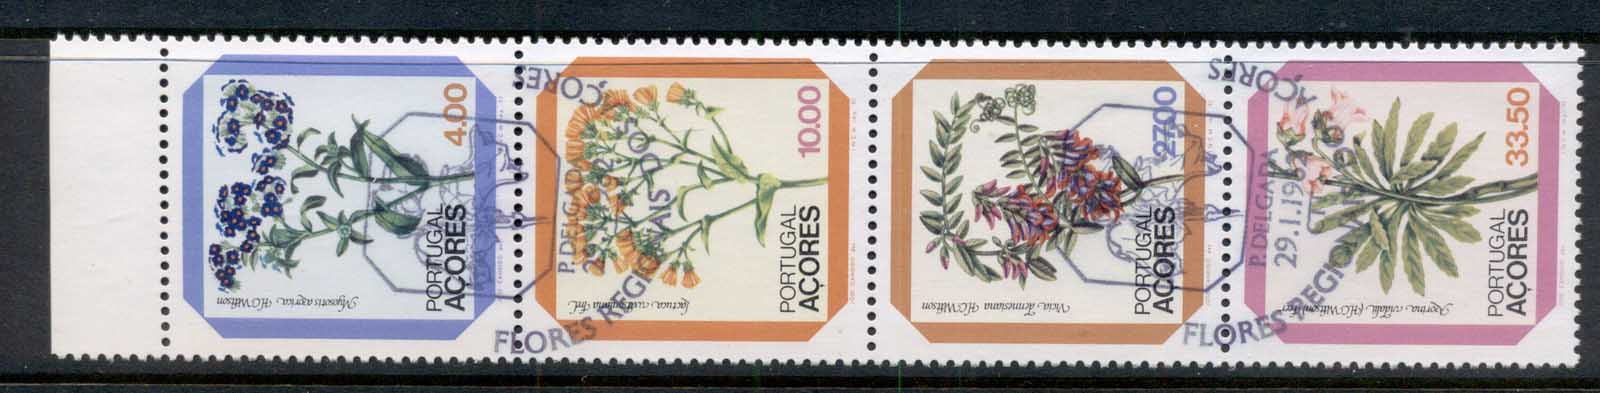 Azores 1982 Flowers booklet pane FU